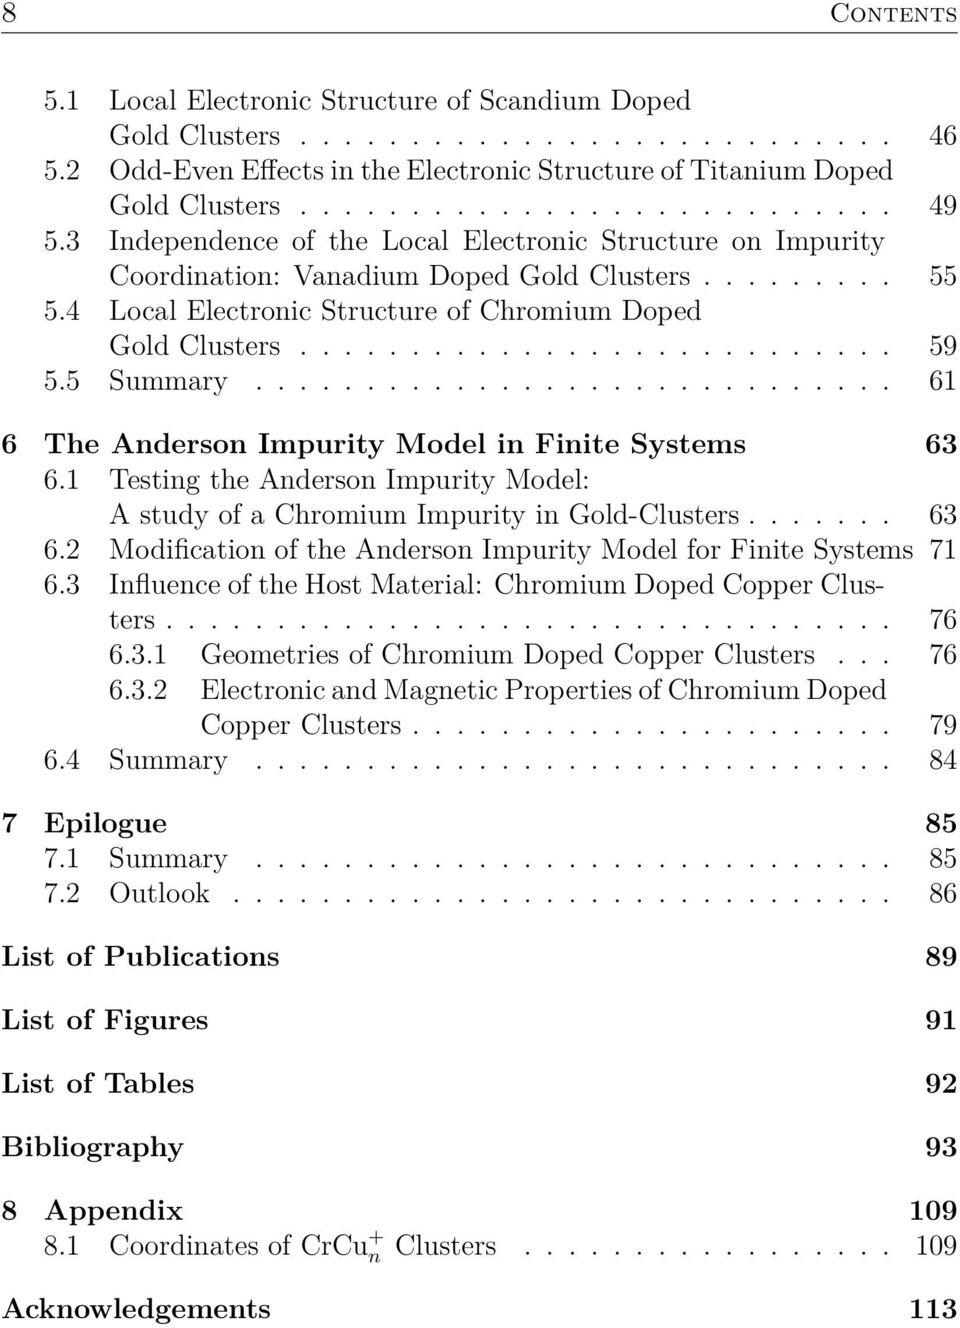 5 Summary............................. 61 6 The Anderson Impurity Model in Finite Systems 63 6.1 Testing the Anderson Impurity Model: A study of a Chromium Impurity in Gold-Clusters....... 63 6.2 Modification of the Anderson Impurity Model for Finite Systems 71 6.